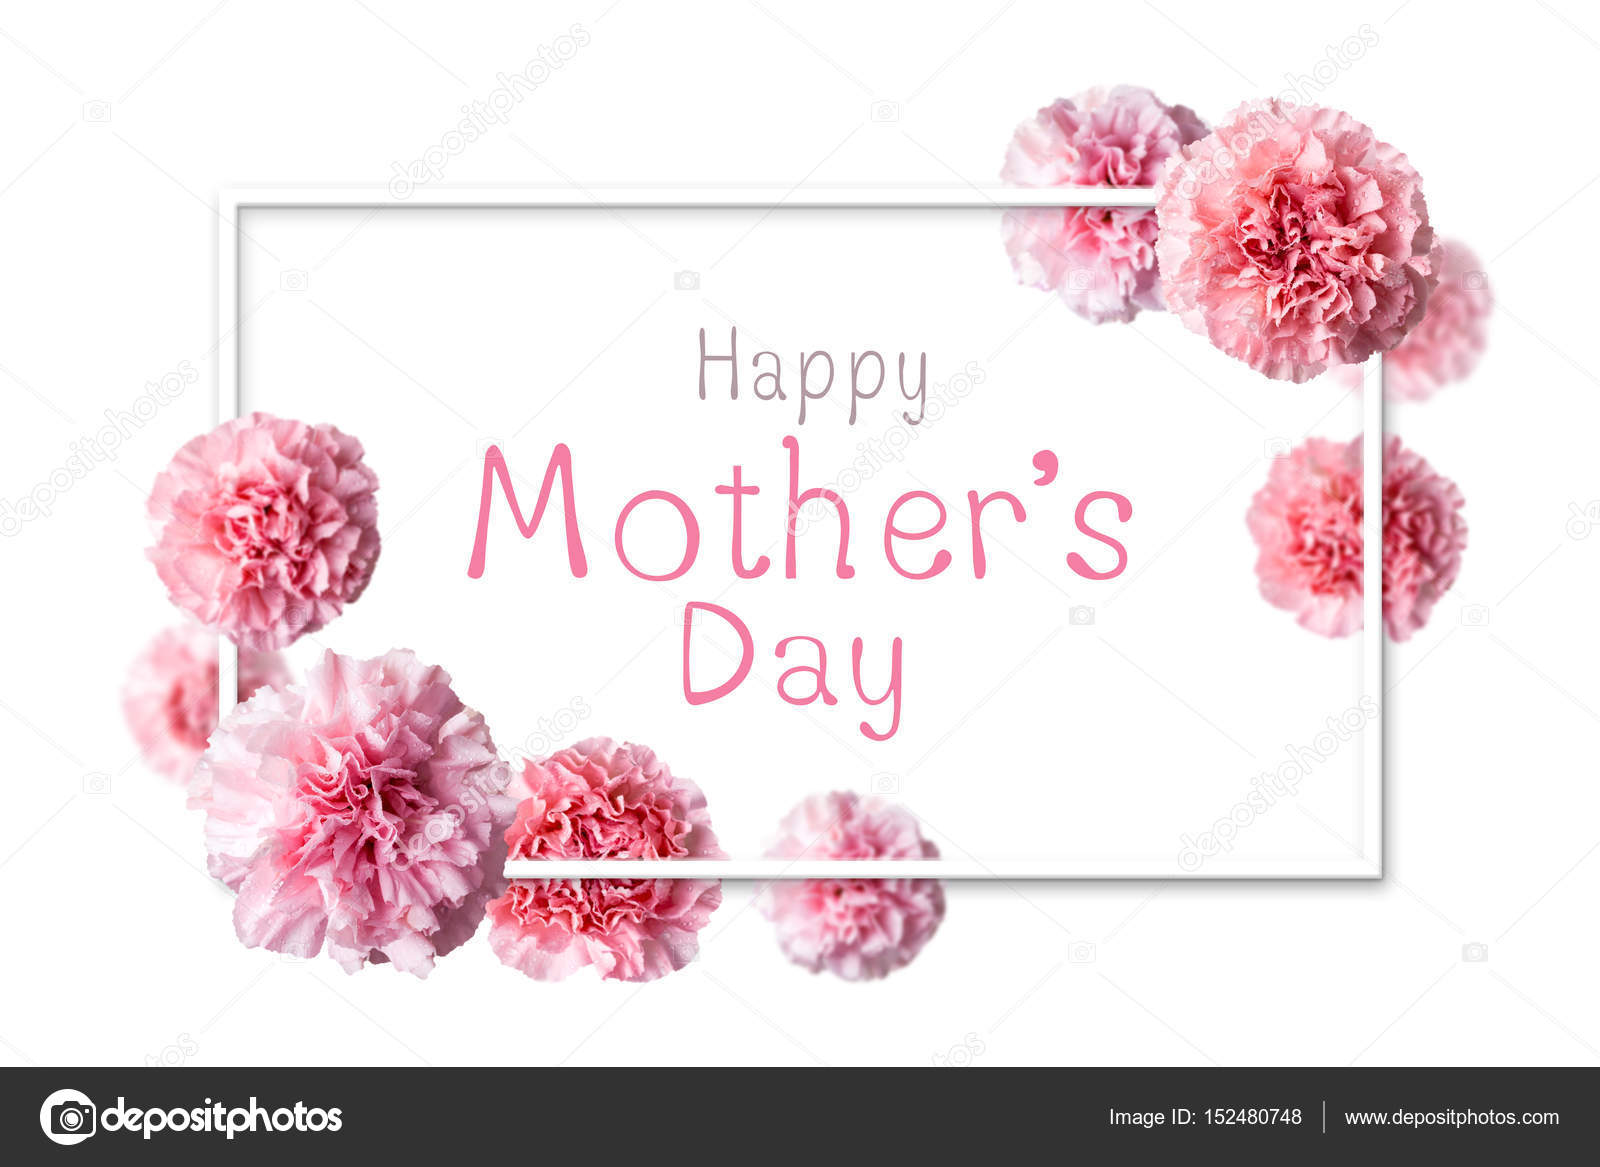 Happy Mothers Day Message In White Frame With Pink Carnation